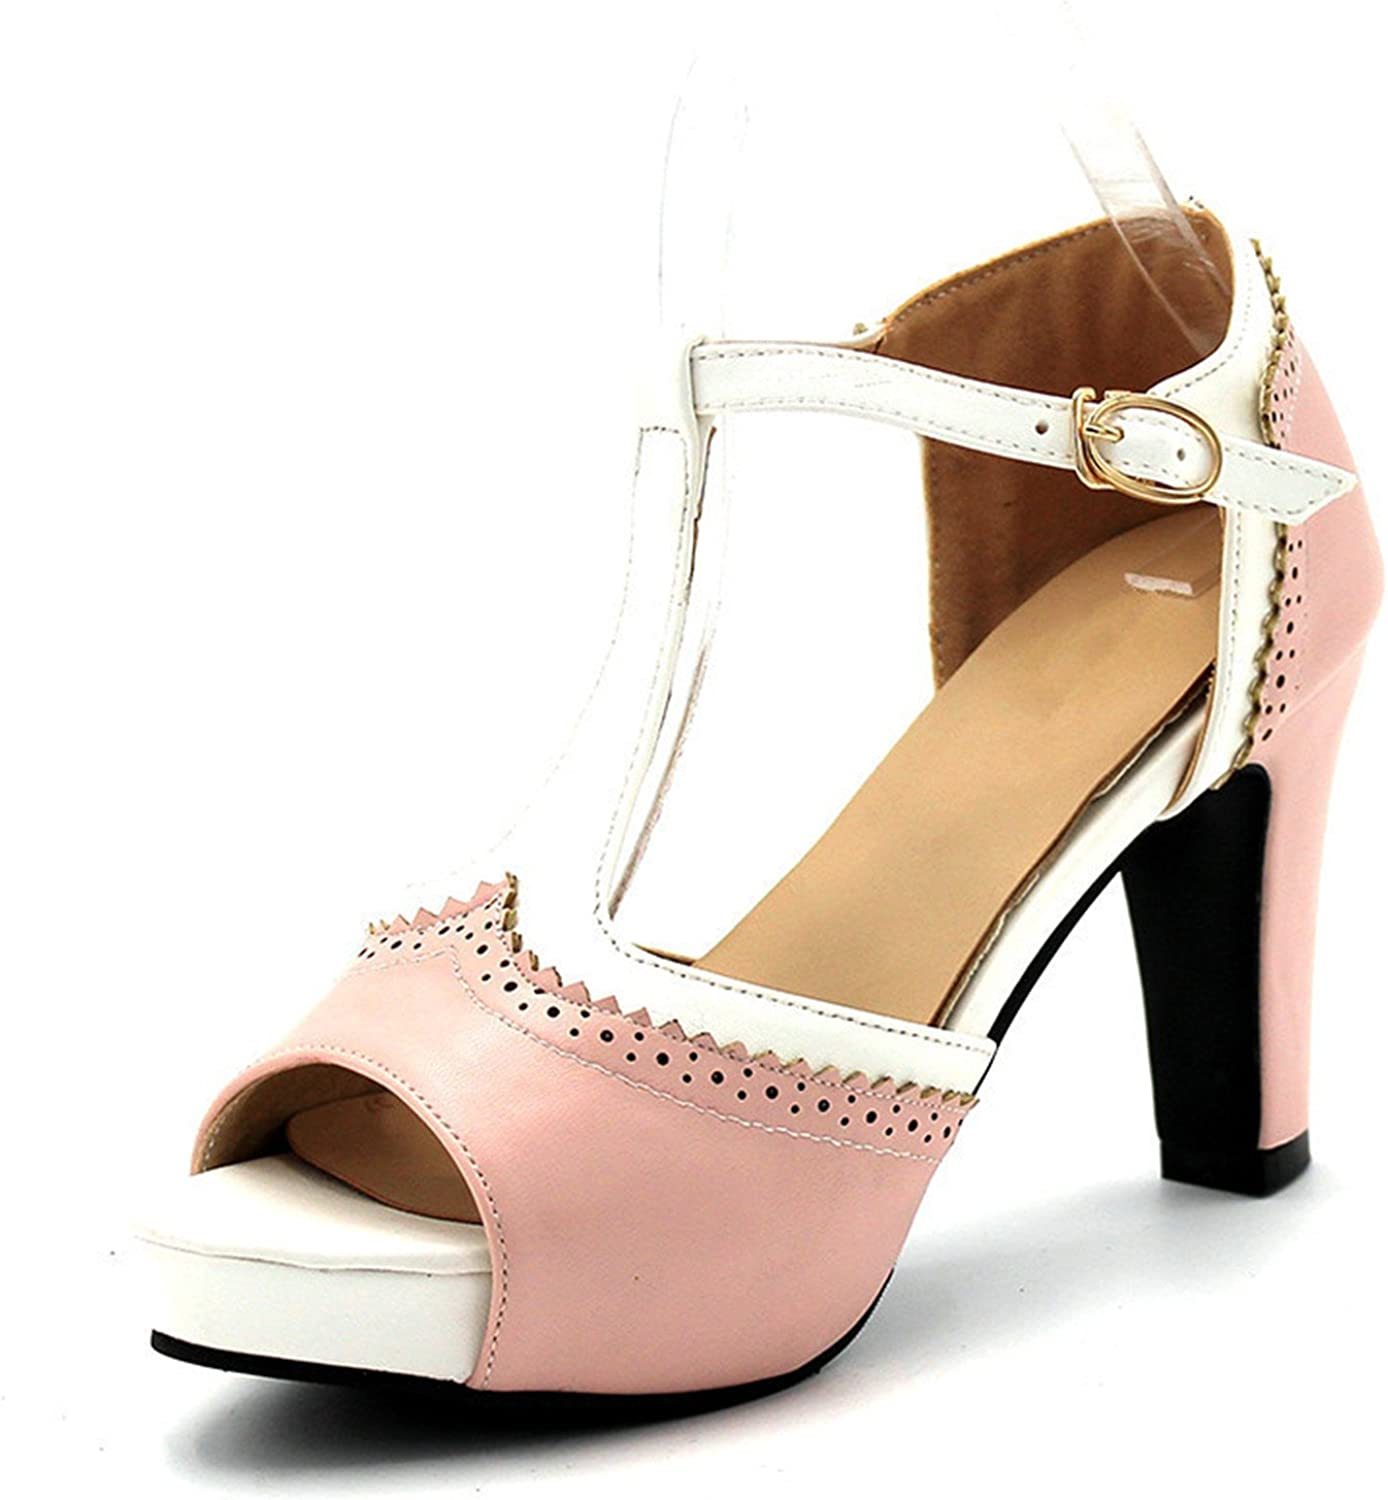 Daniig Women shoes Peep Toe Pumps for Women Buckle Strap Wedding and Party shoes Girl shoes Pink bluee Shallow High Heel shoes